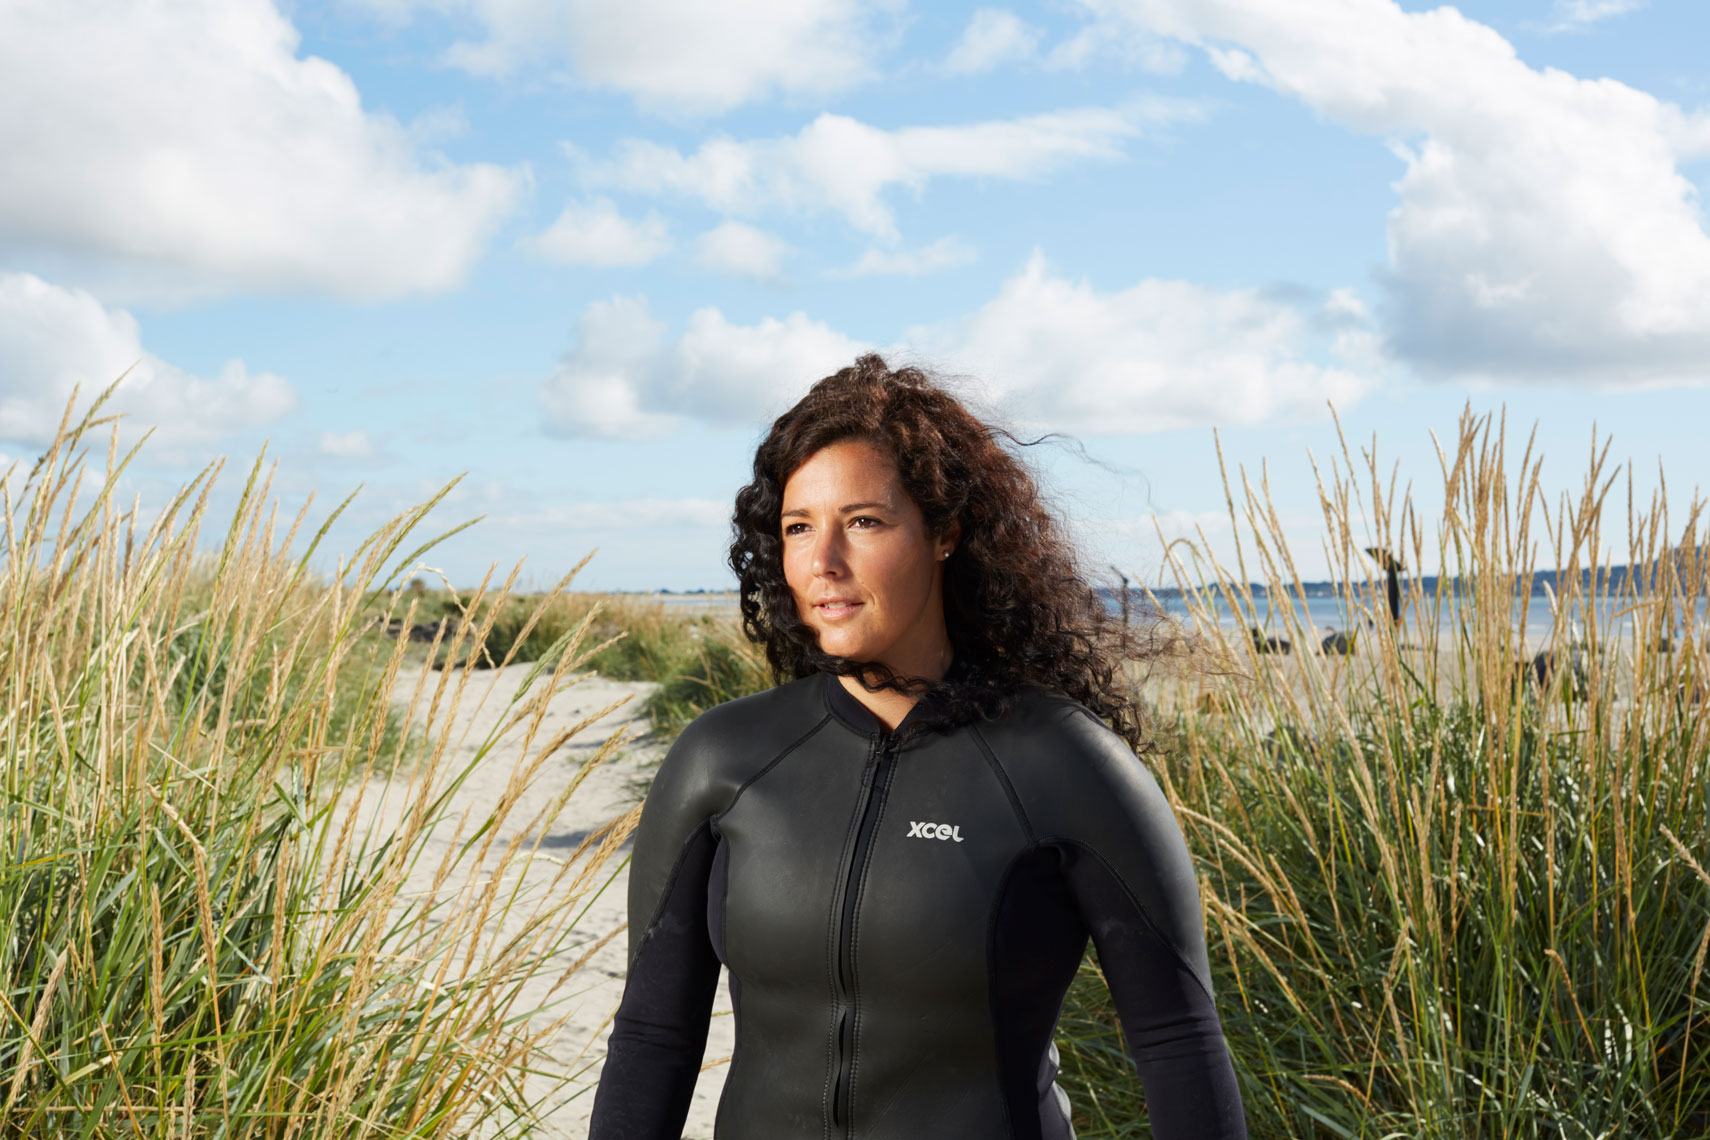 athletic girl wearing wetsuit stands amongst sand dunes